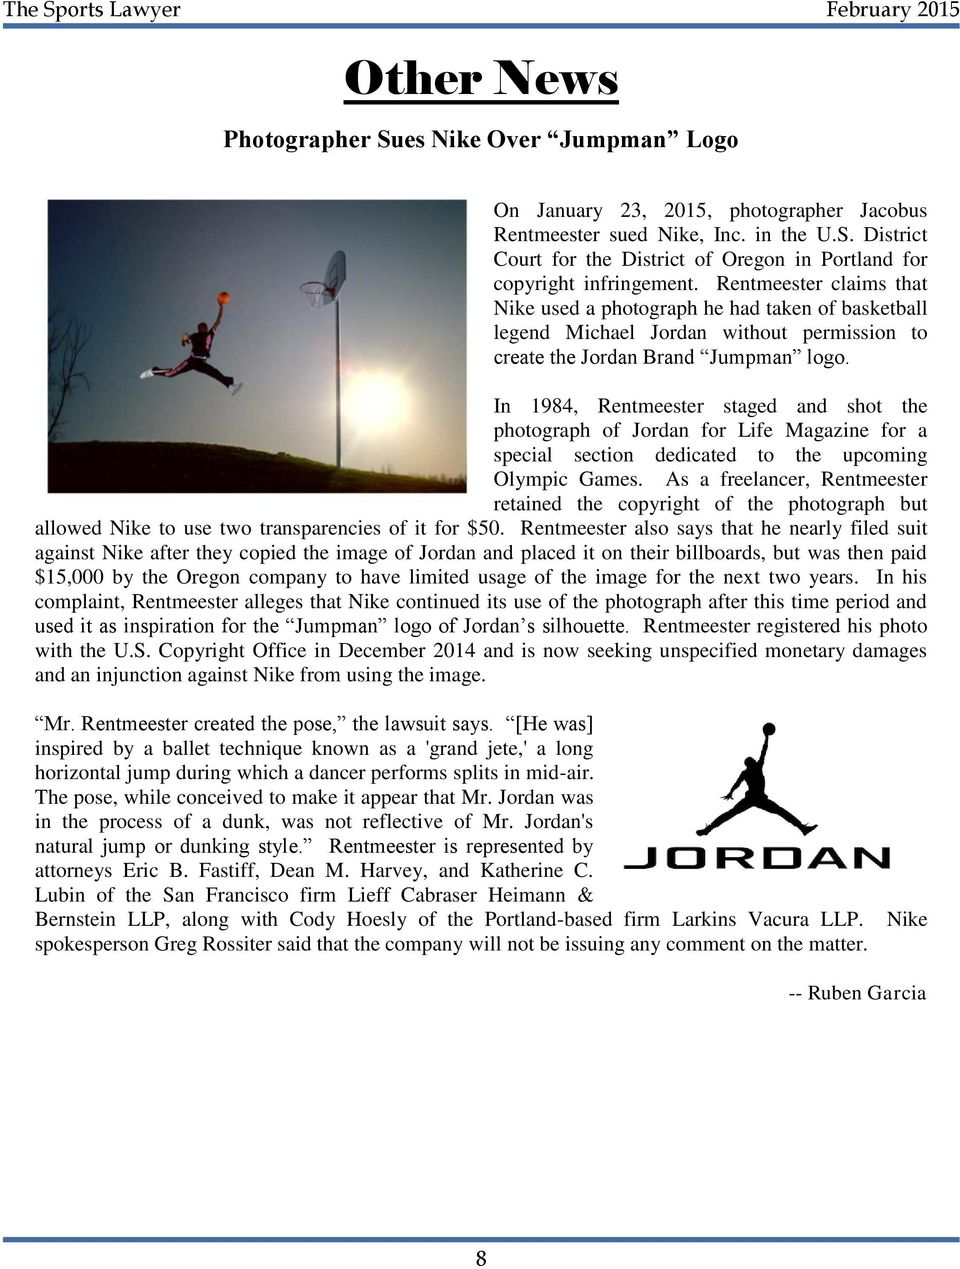 In 1984, Rentmeester staged and shot the photograph of Jordan for Life Magazine for a special section dedicated to the upcoming Olympic Games.